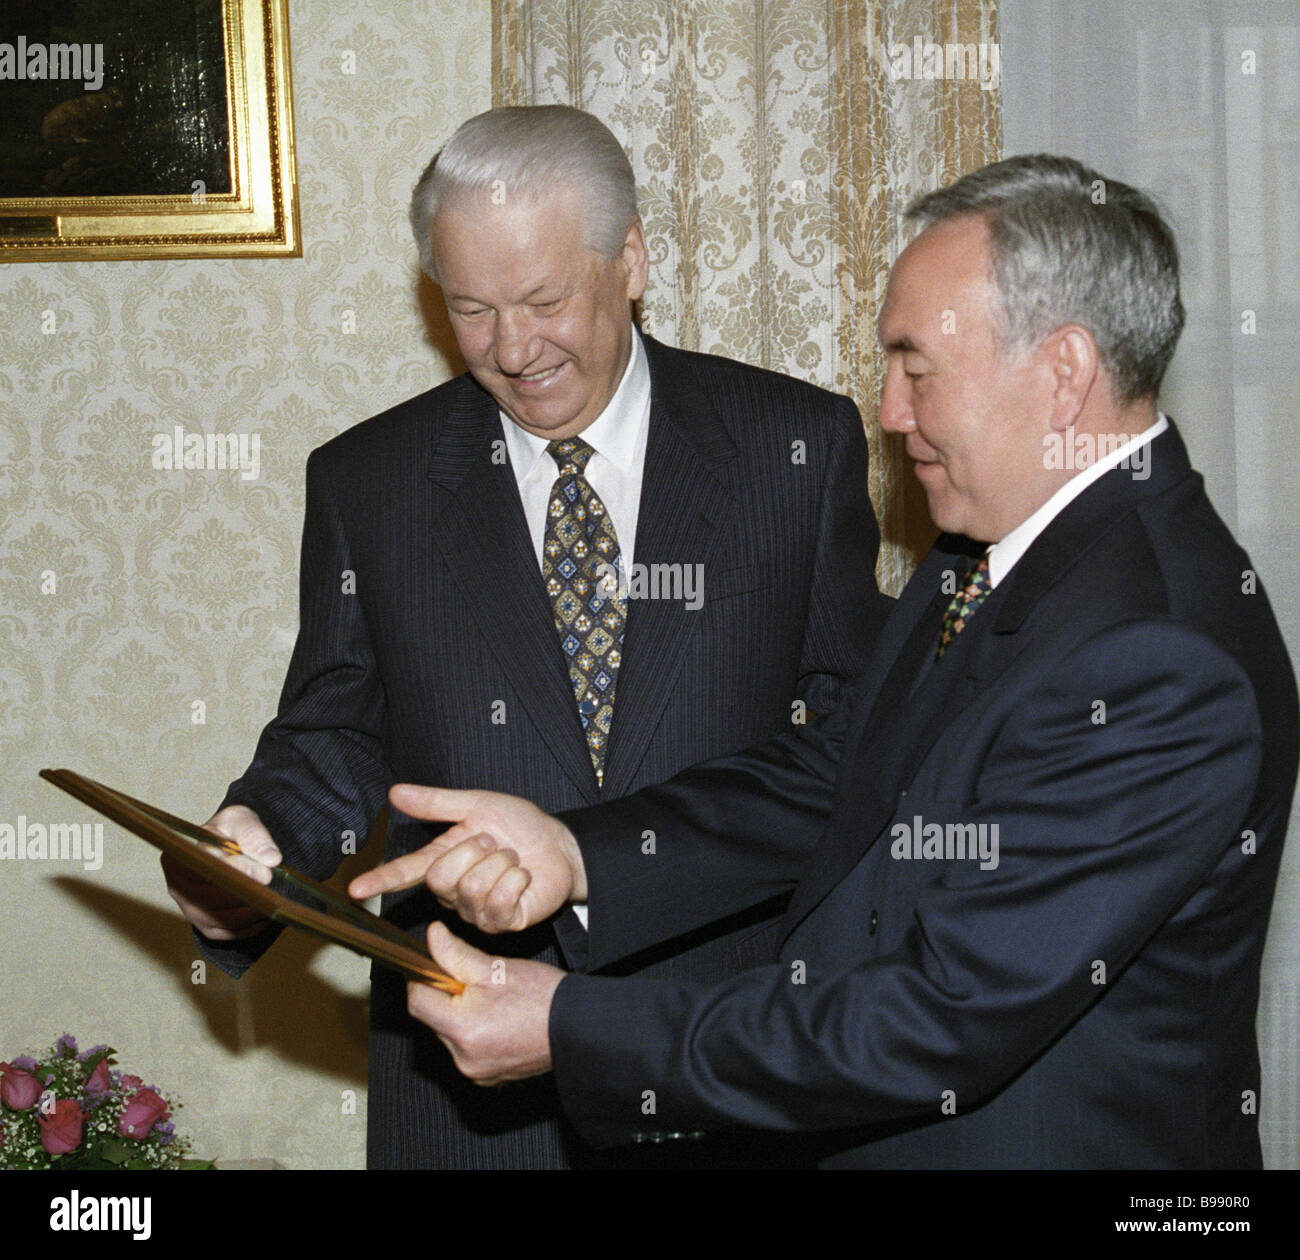 President Yeltsin: years of government and results 97